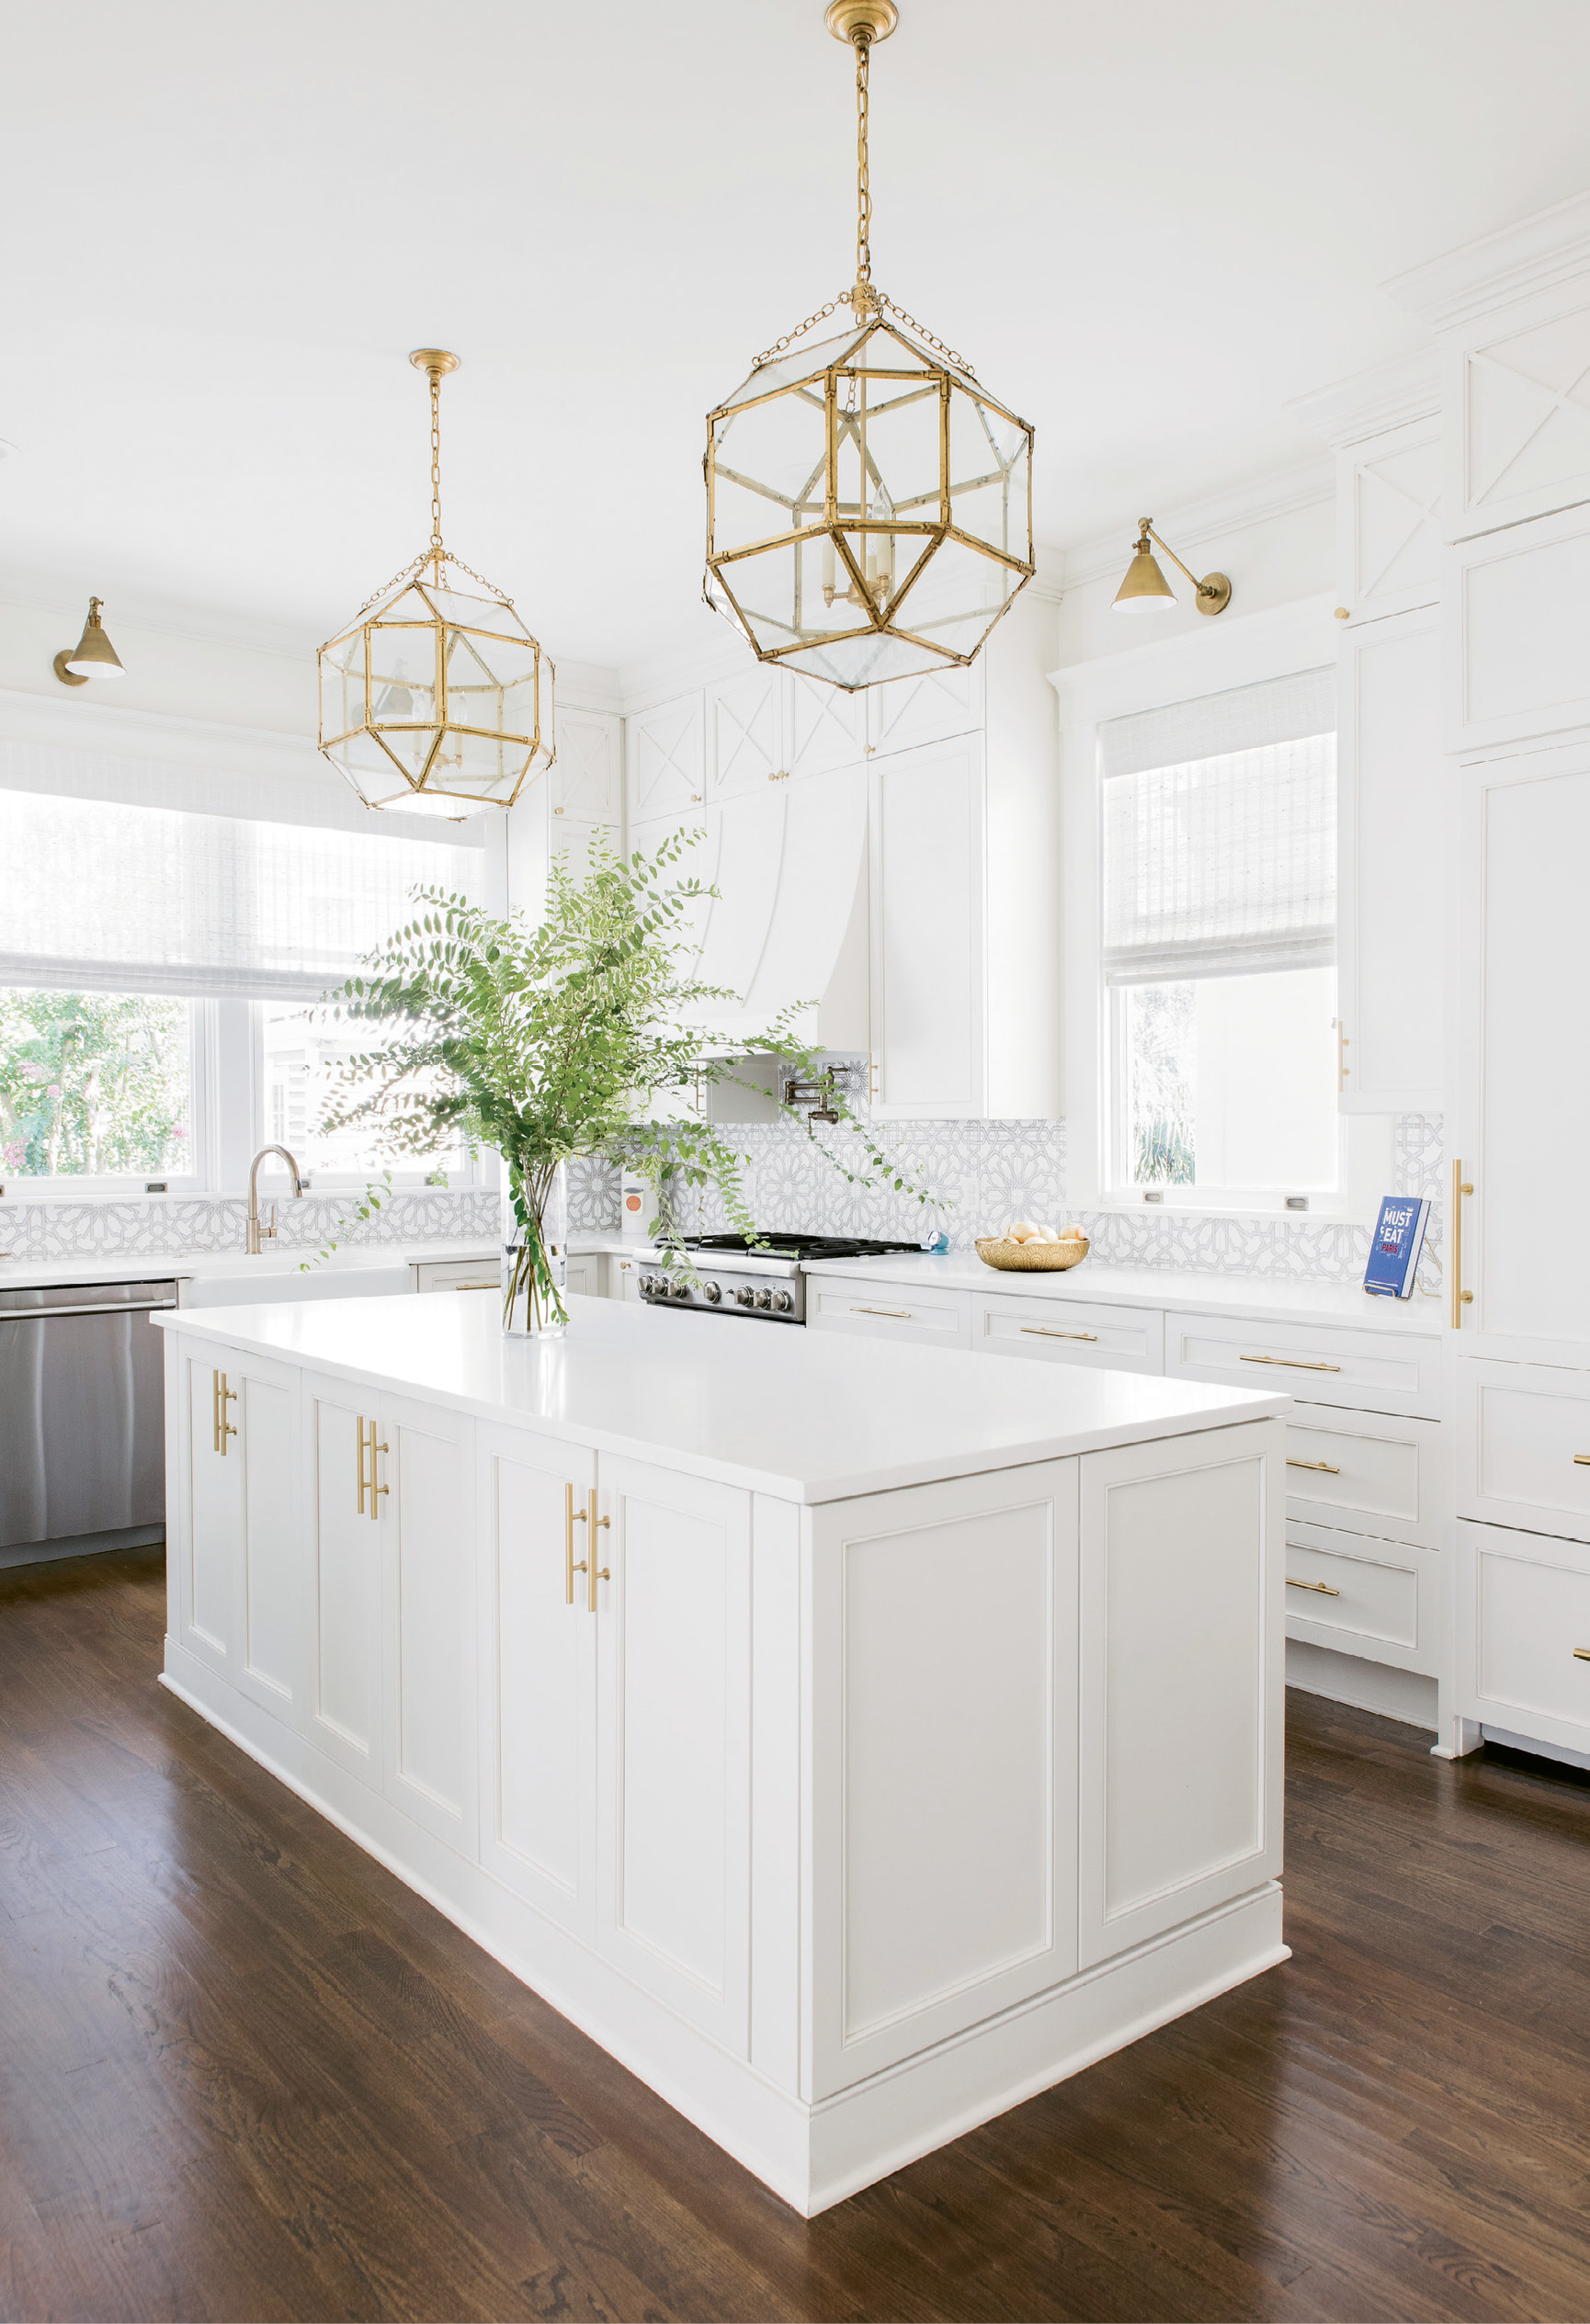 """LIGHT & BRIGHT: """"The kitchen is a good example of what Melissa did so well, filling every nook and cranny and making them useful in some way,"""" says Alison. Fireclay backsplash and gold pendants and sconces add glamour to the utilitarian space."""